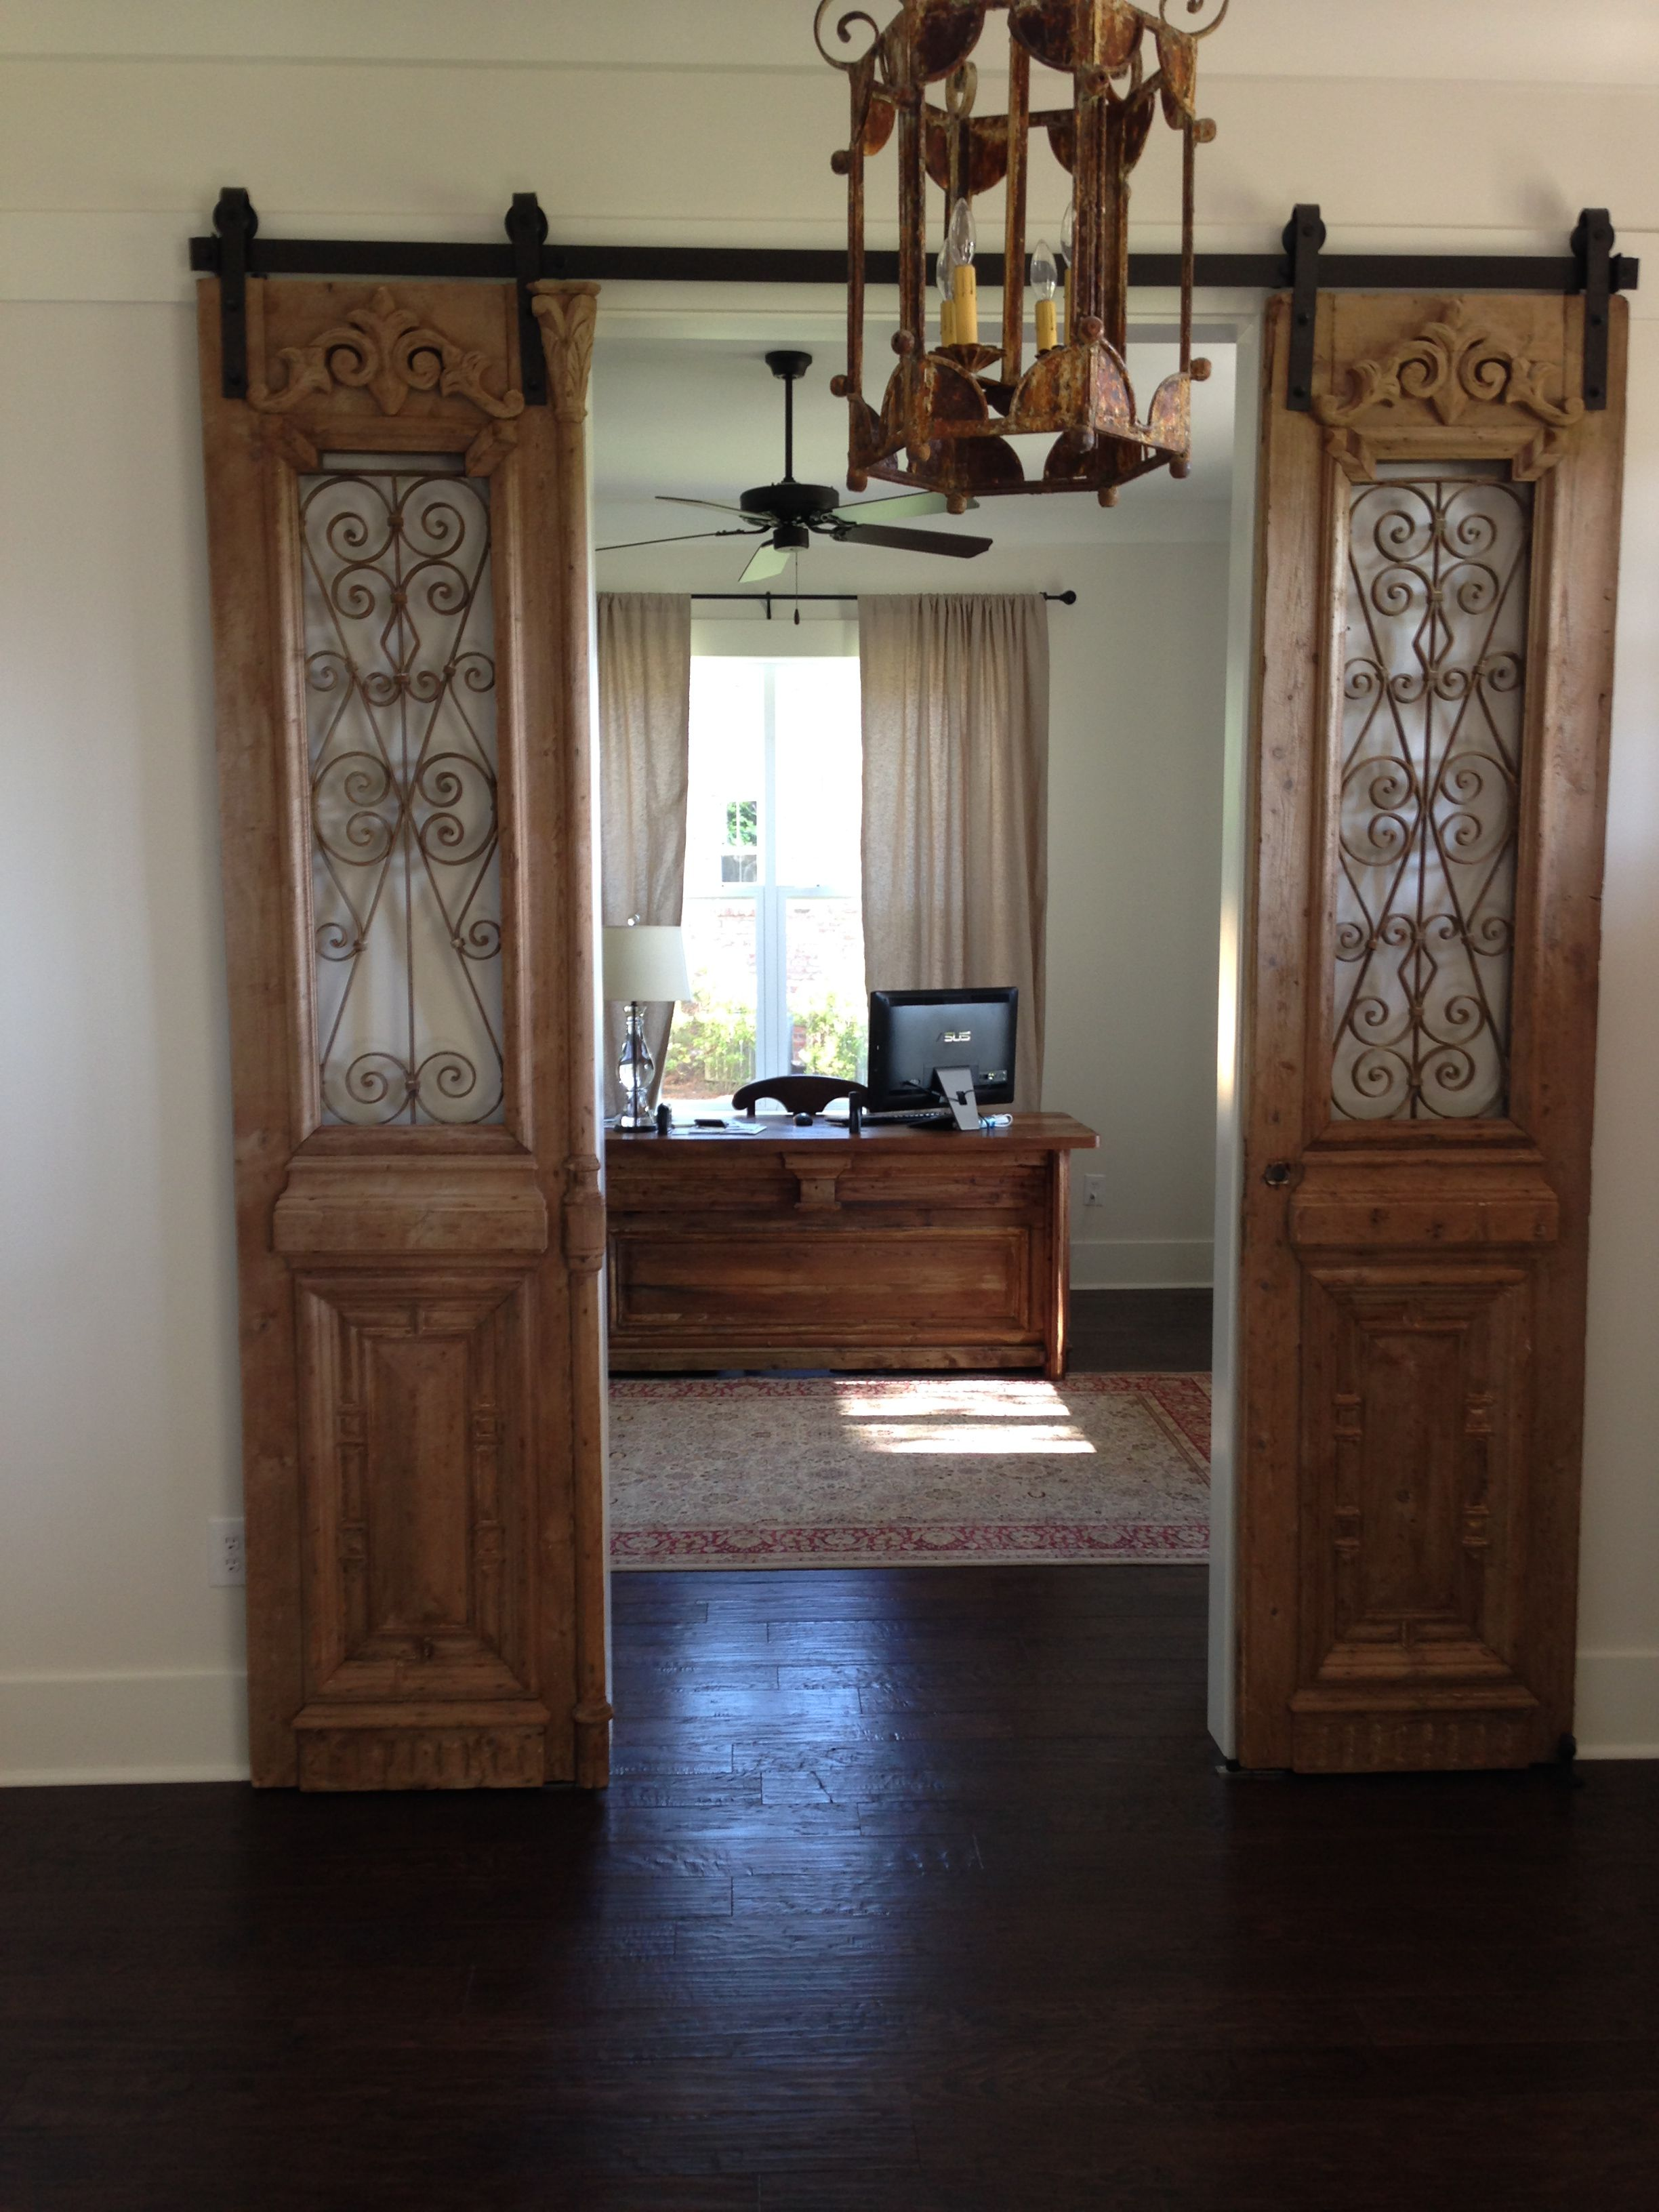 Our Antique French Iron Exterior Doors Hung Barn Door Style And